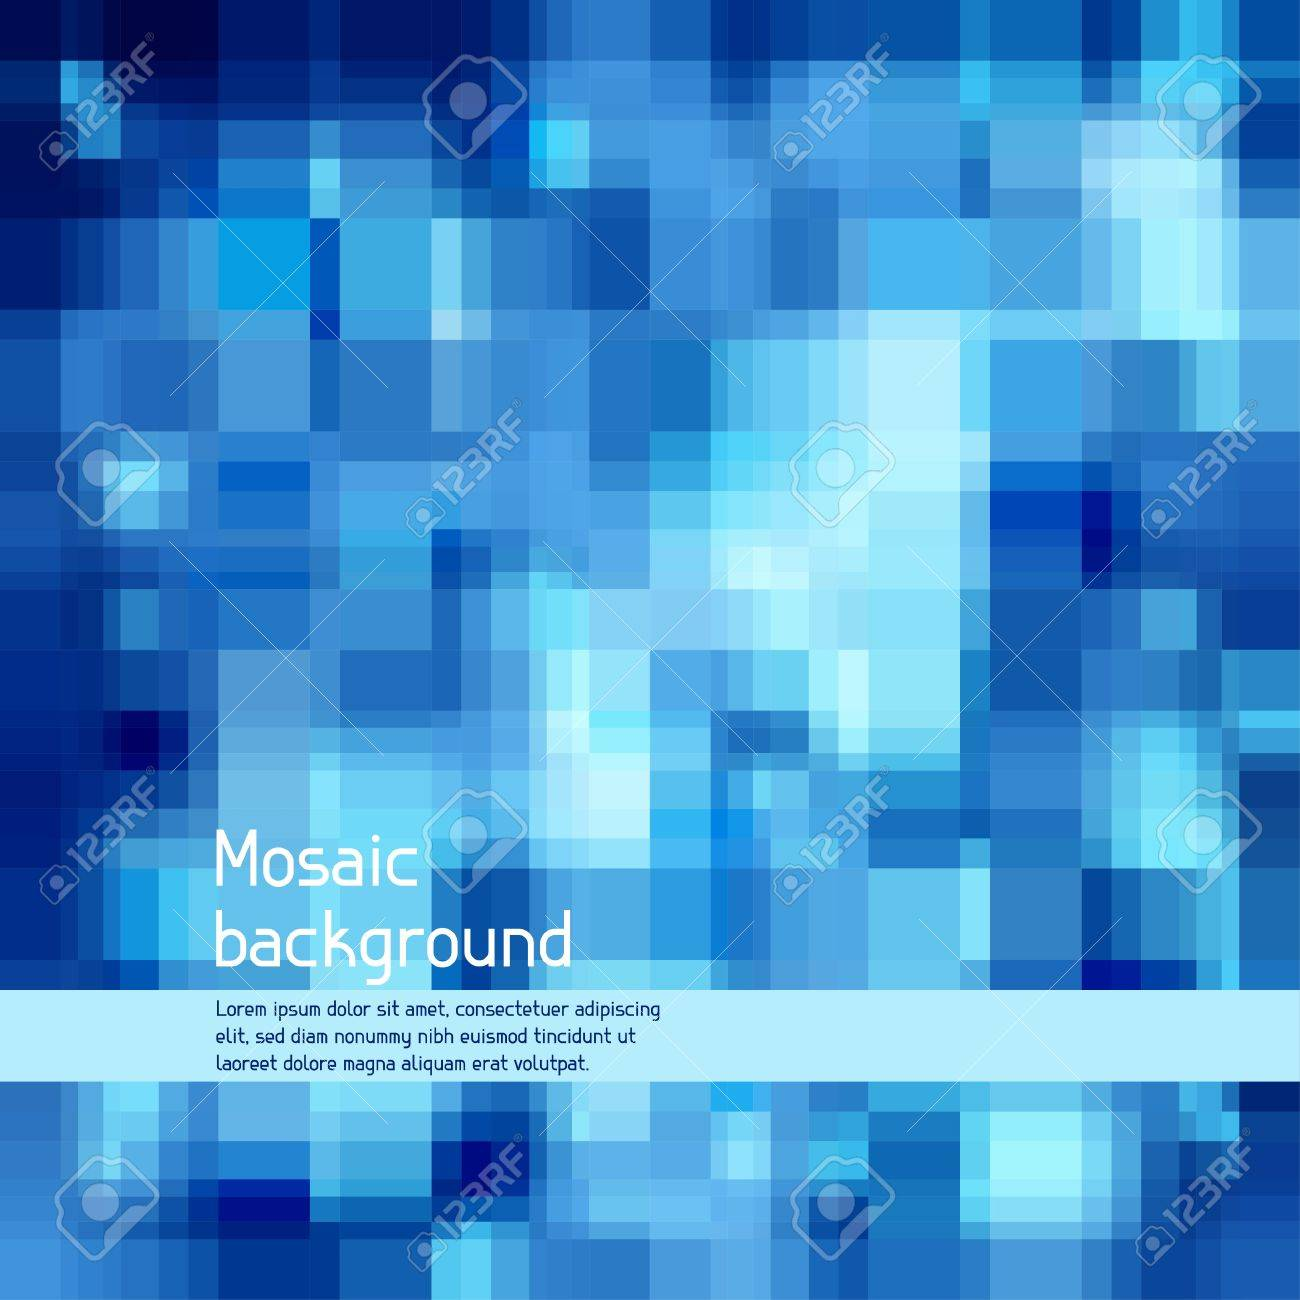 Mosaic abstract high-tech background Stock Vector - 18551082